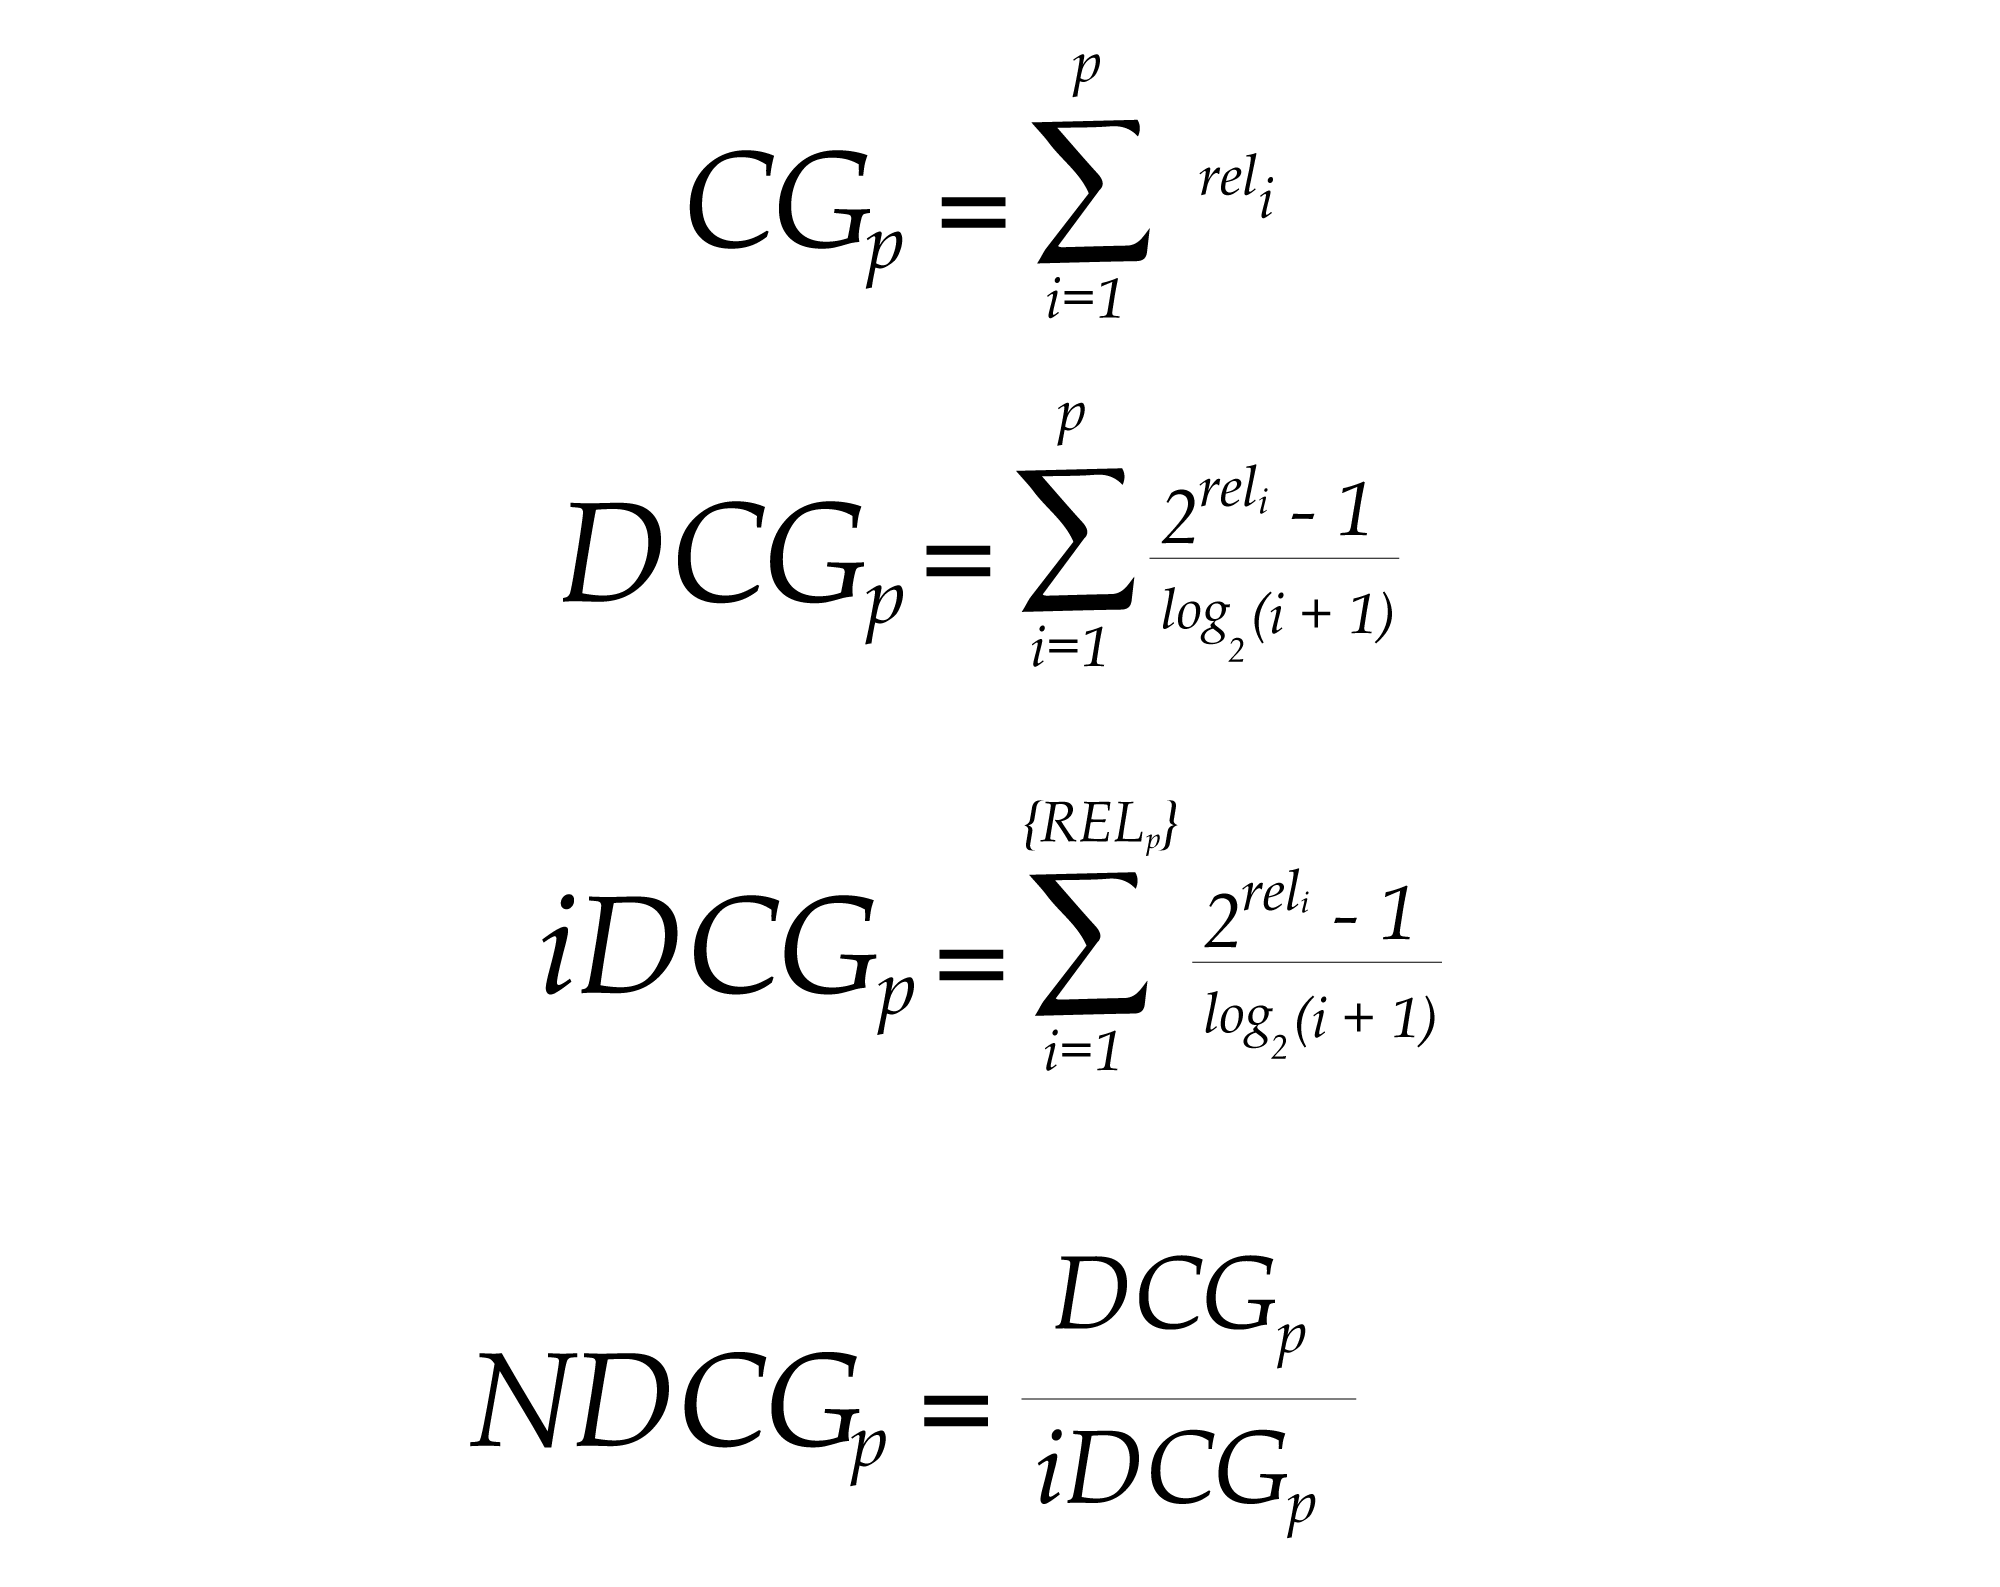 The CG, DCG and NDCG at particular rank p